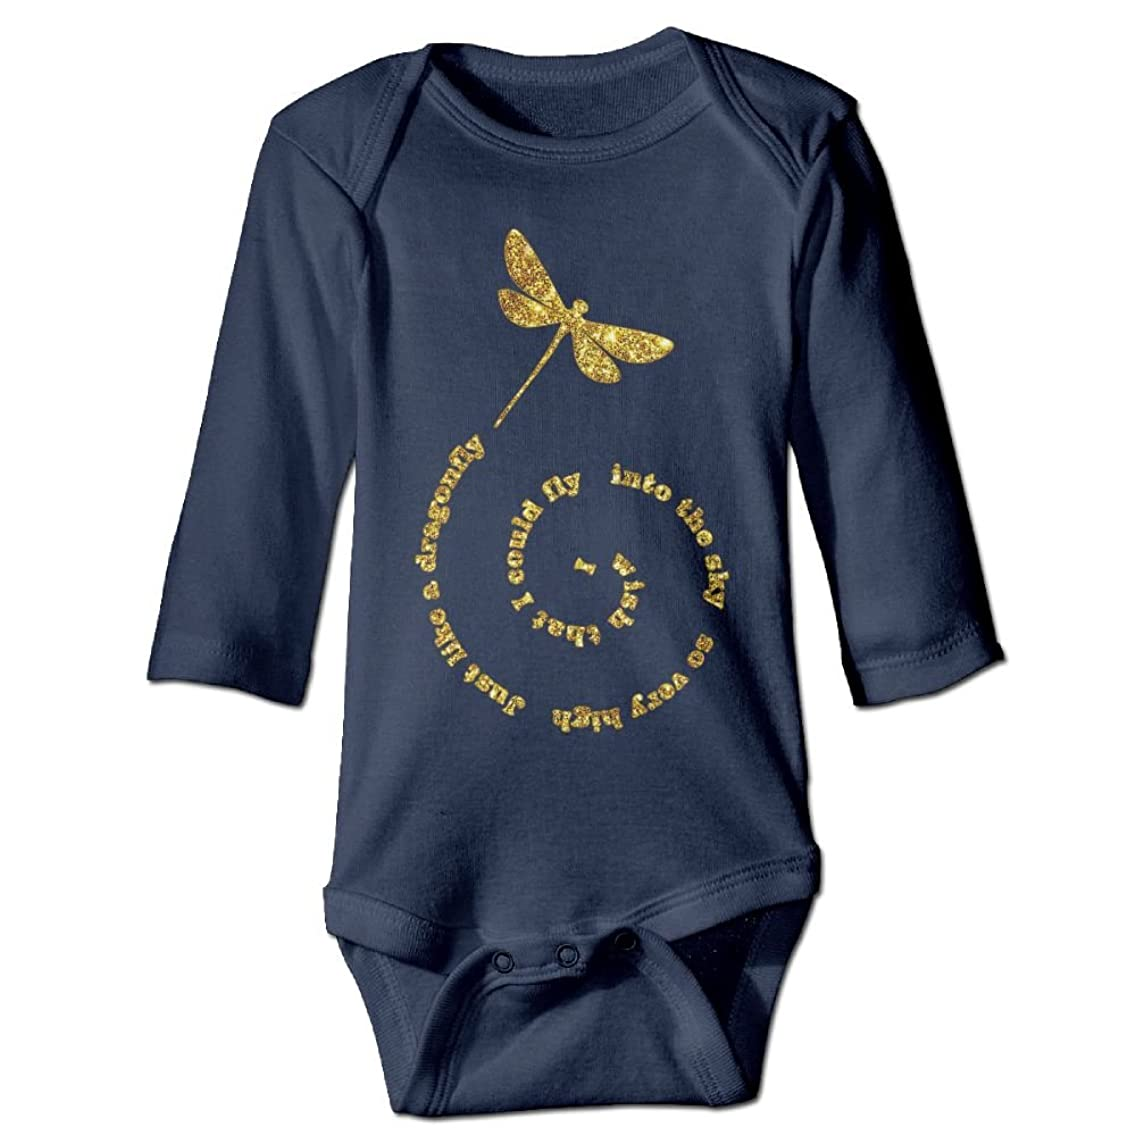 Unisex Cotton Long Sleeve Fly Away Dragonfly Cute Dragonfly Infant Baby Girls' Boys' Onesies Bodysuit Jumpsuit